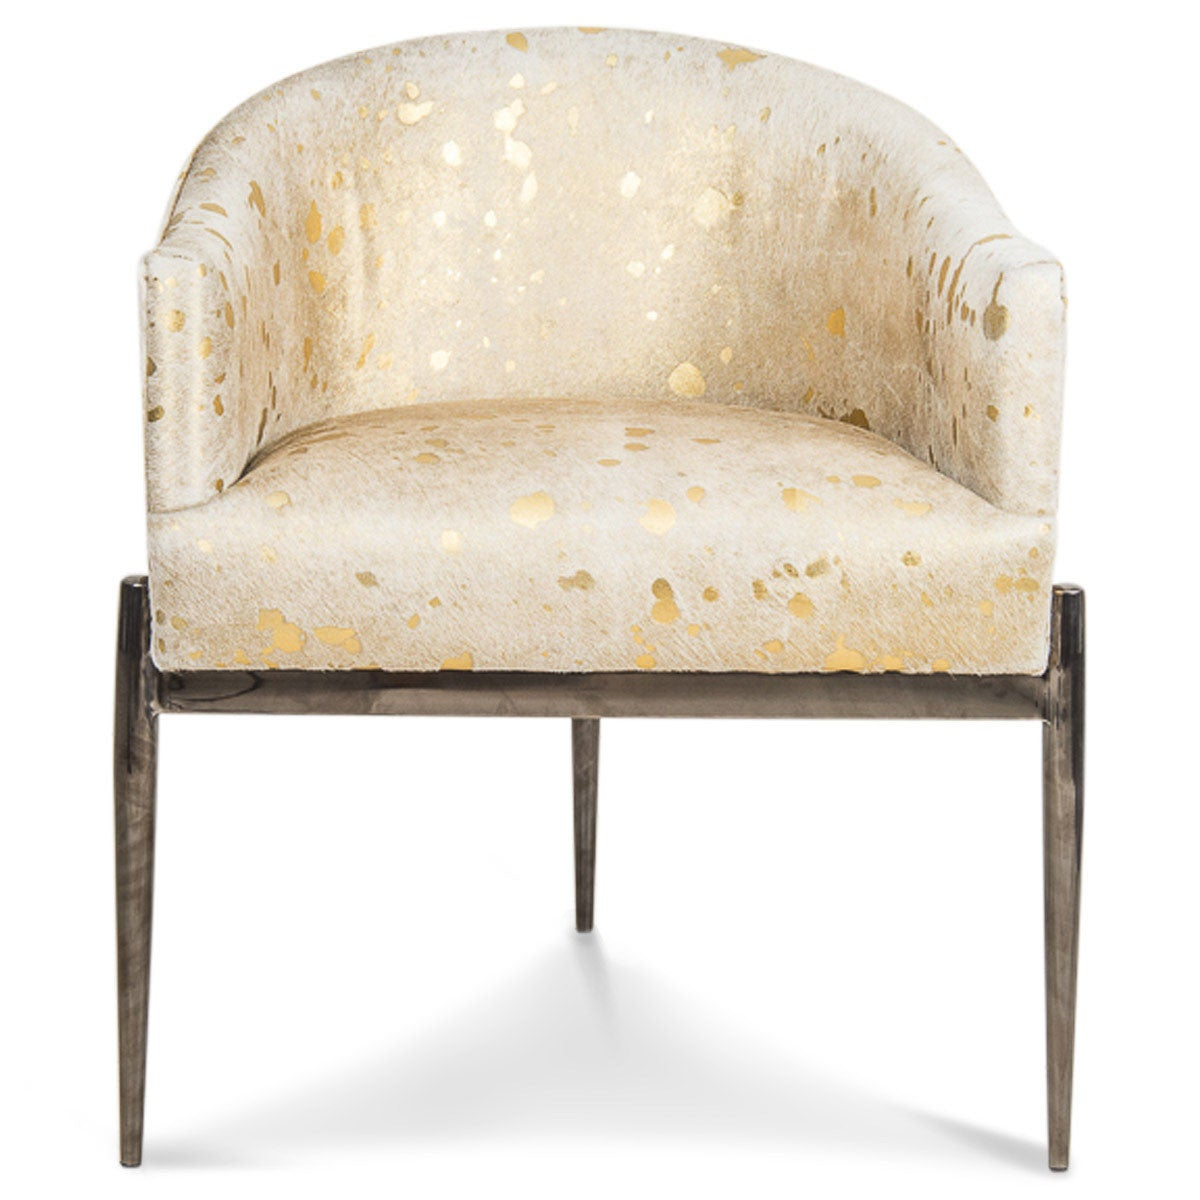 art deco dining furniture. art deco dining chair in golden cowhide furniture 0